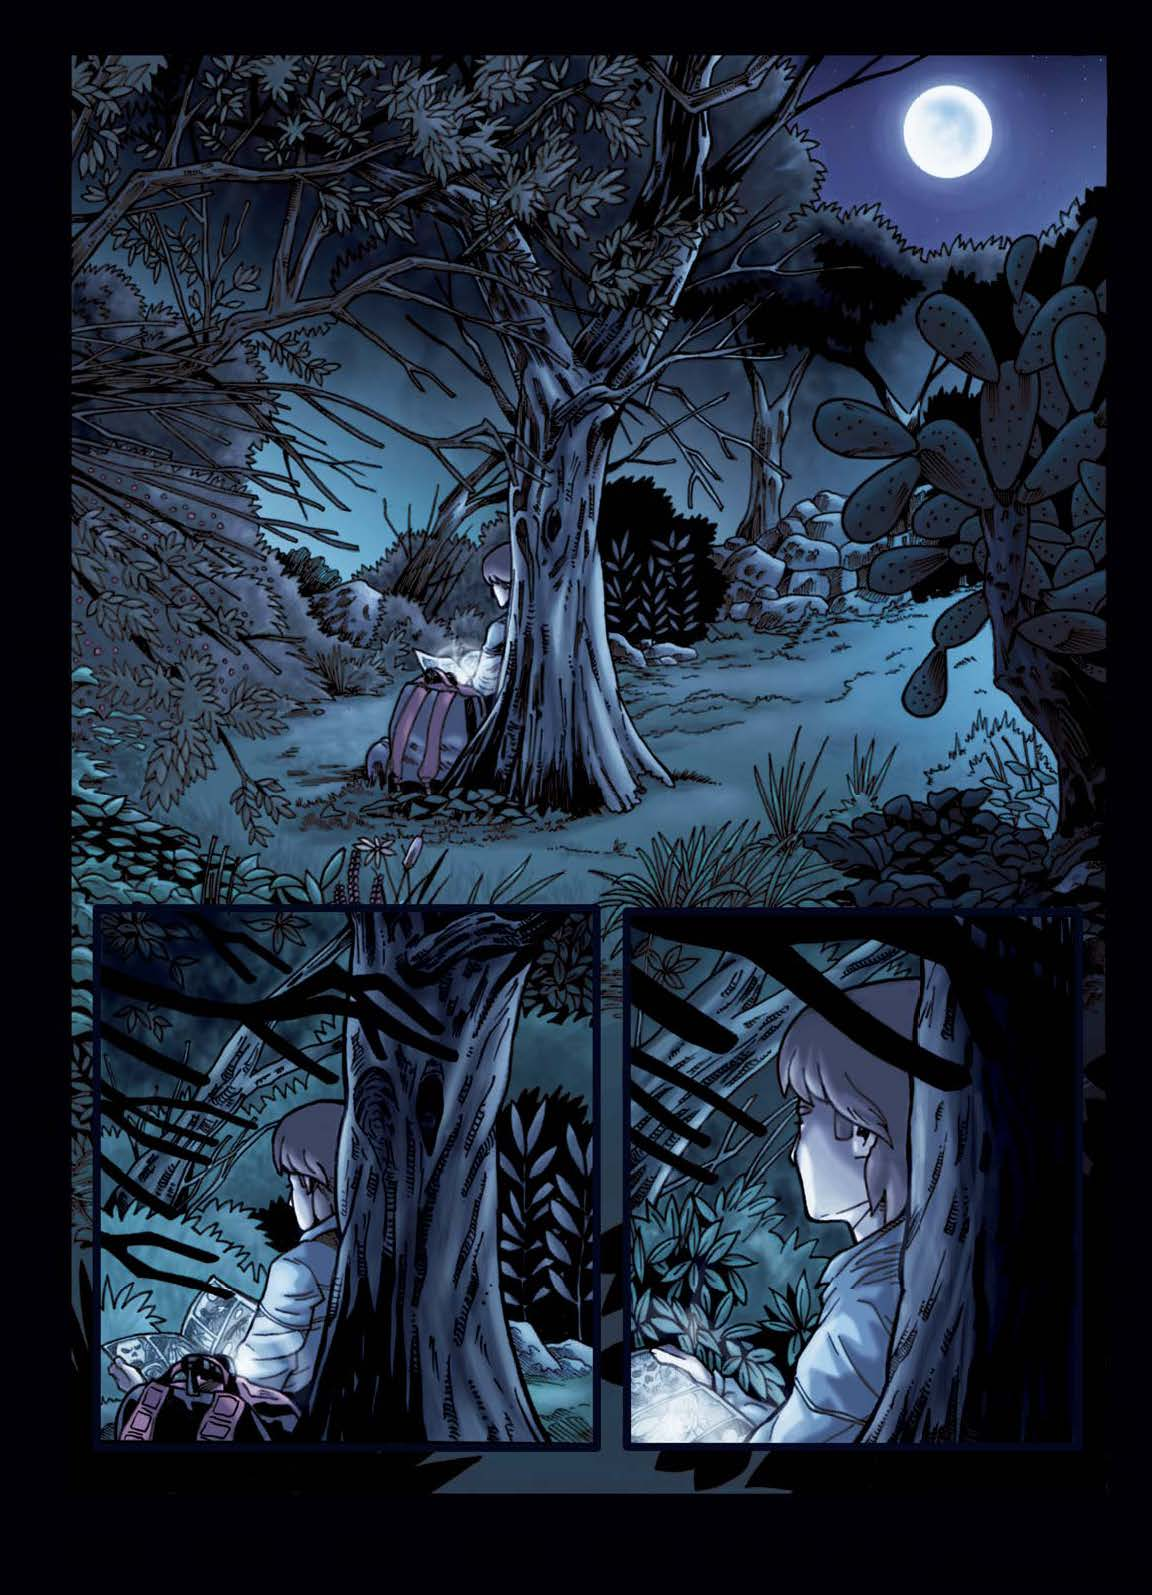 Pages-from-sulla_collina_completo_LR_Page_1_Anteprime